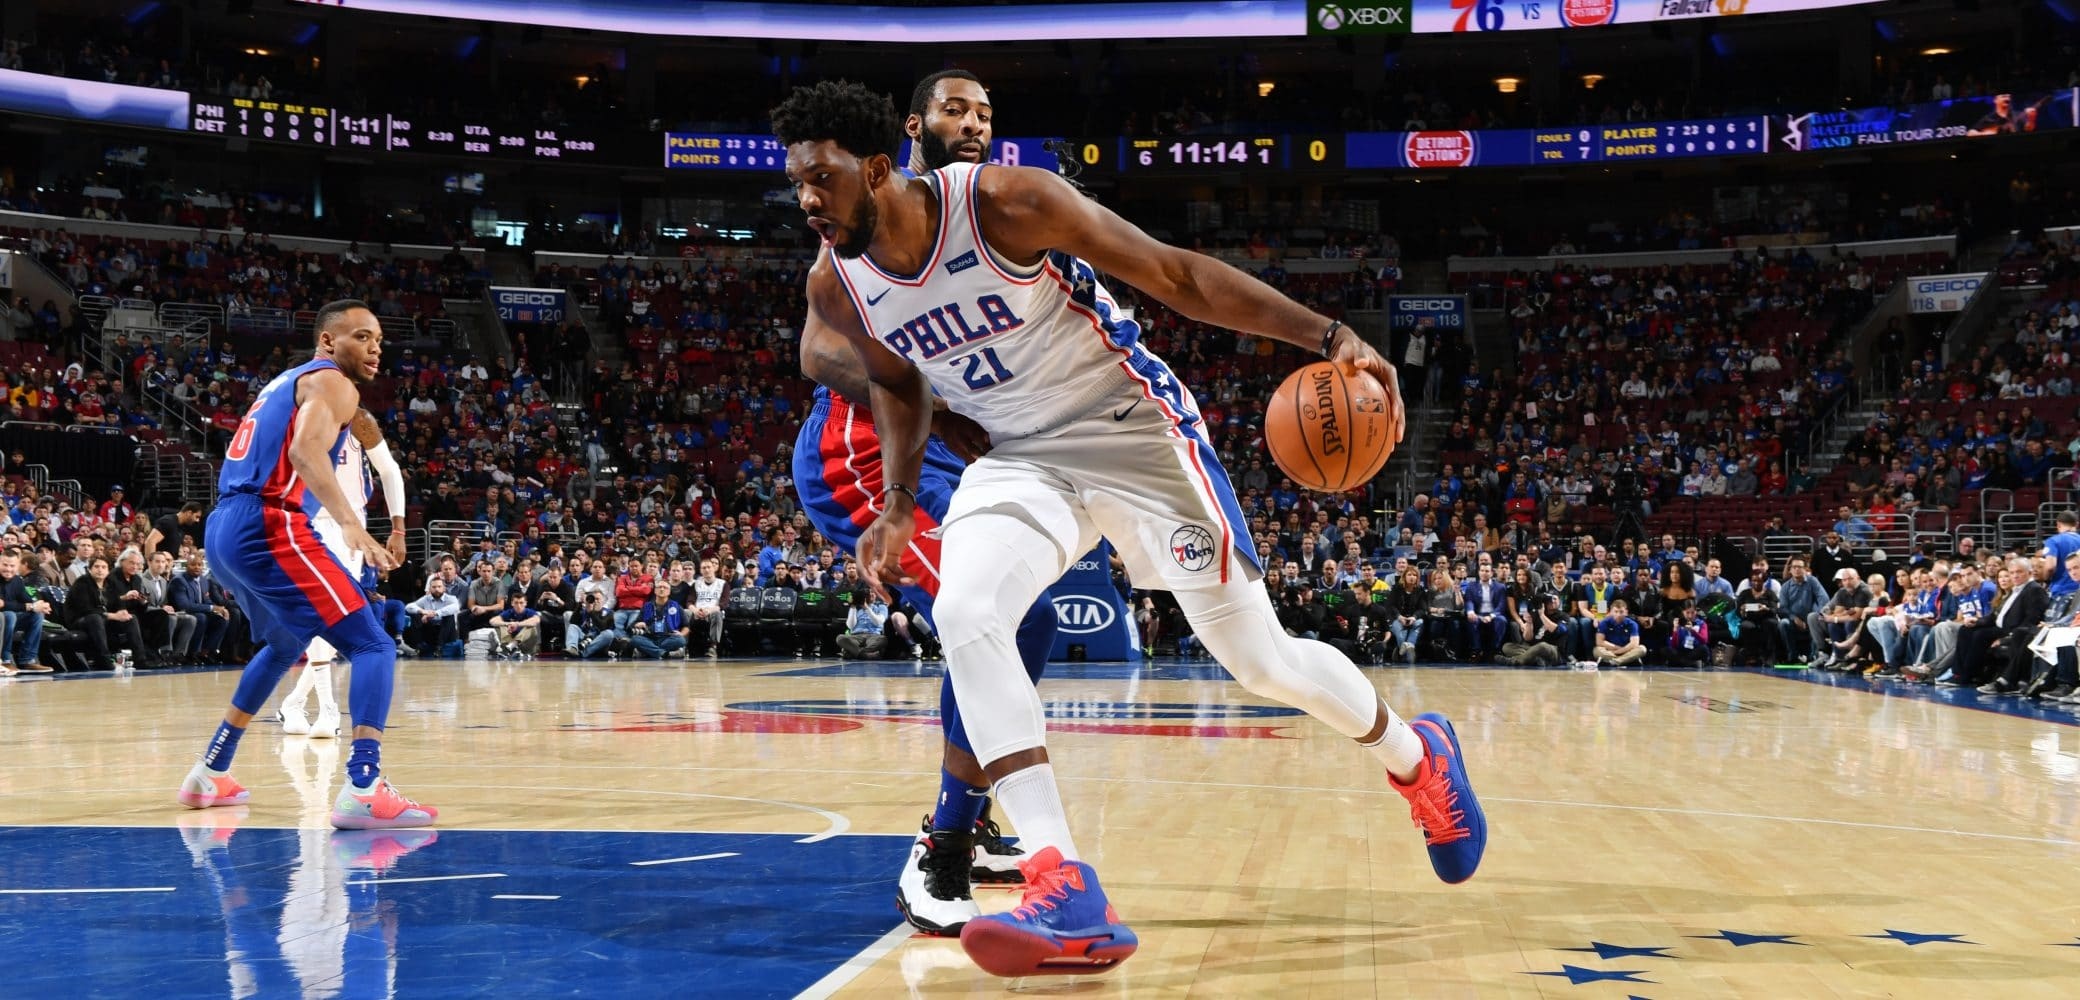 VIDEO // Joel Embiid Toasts Andre Drummond, Calls him a 'Bum' After Being Called 'Fat' and 'Out of Shape'